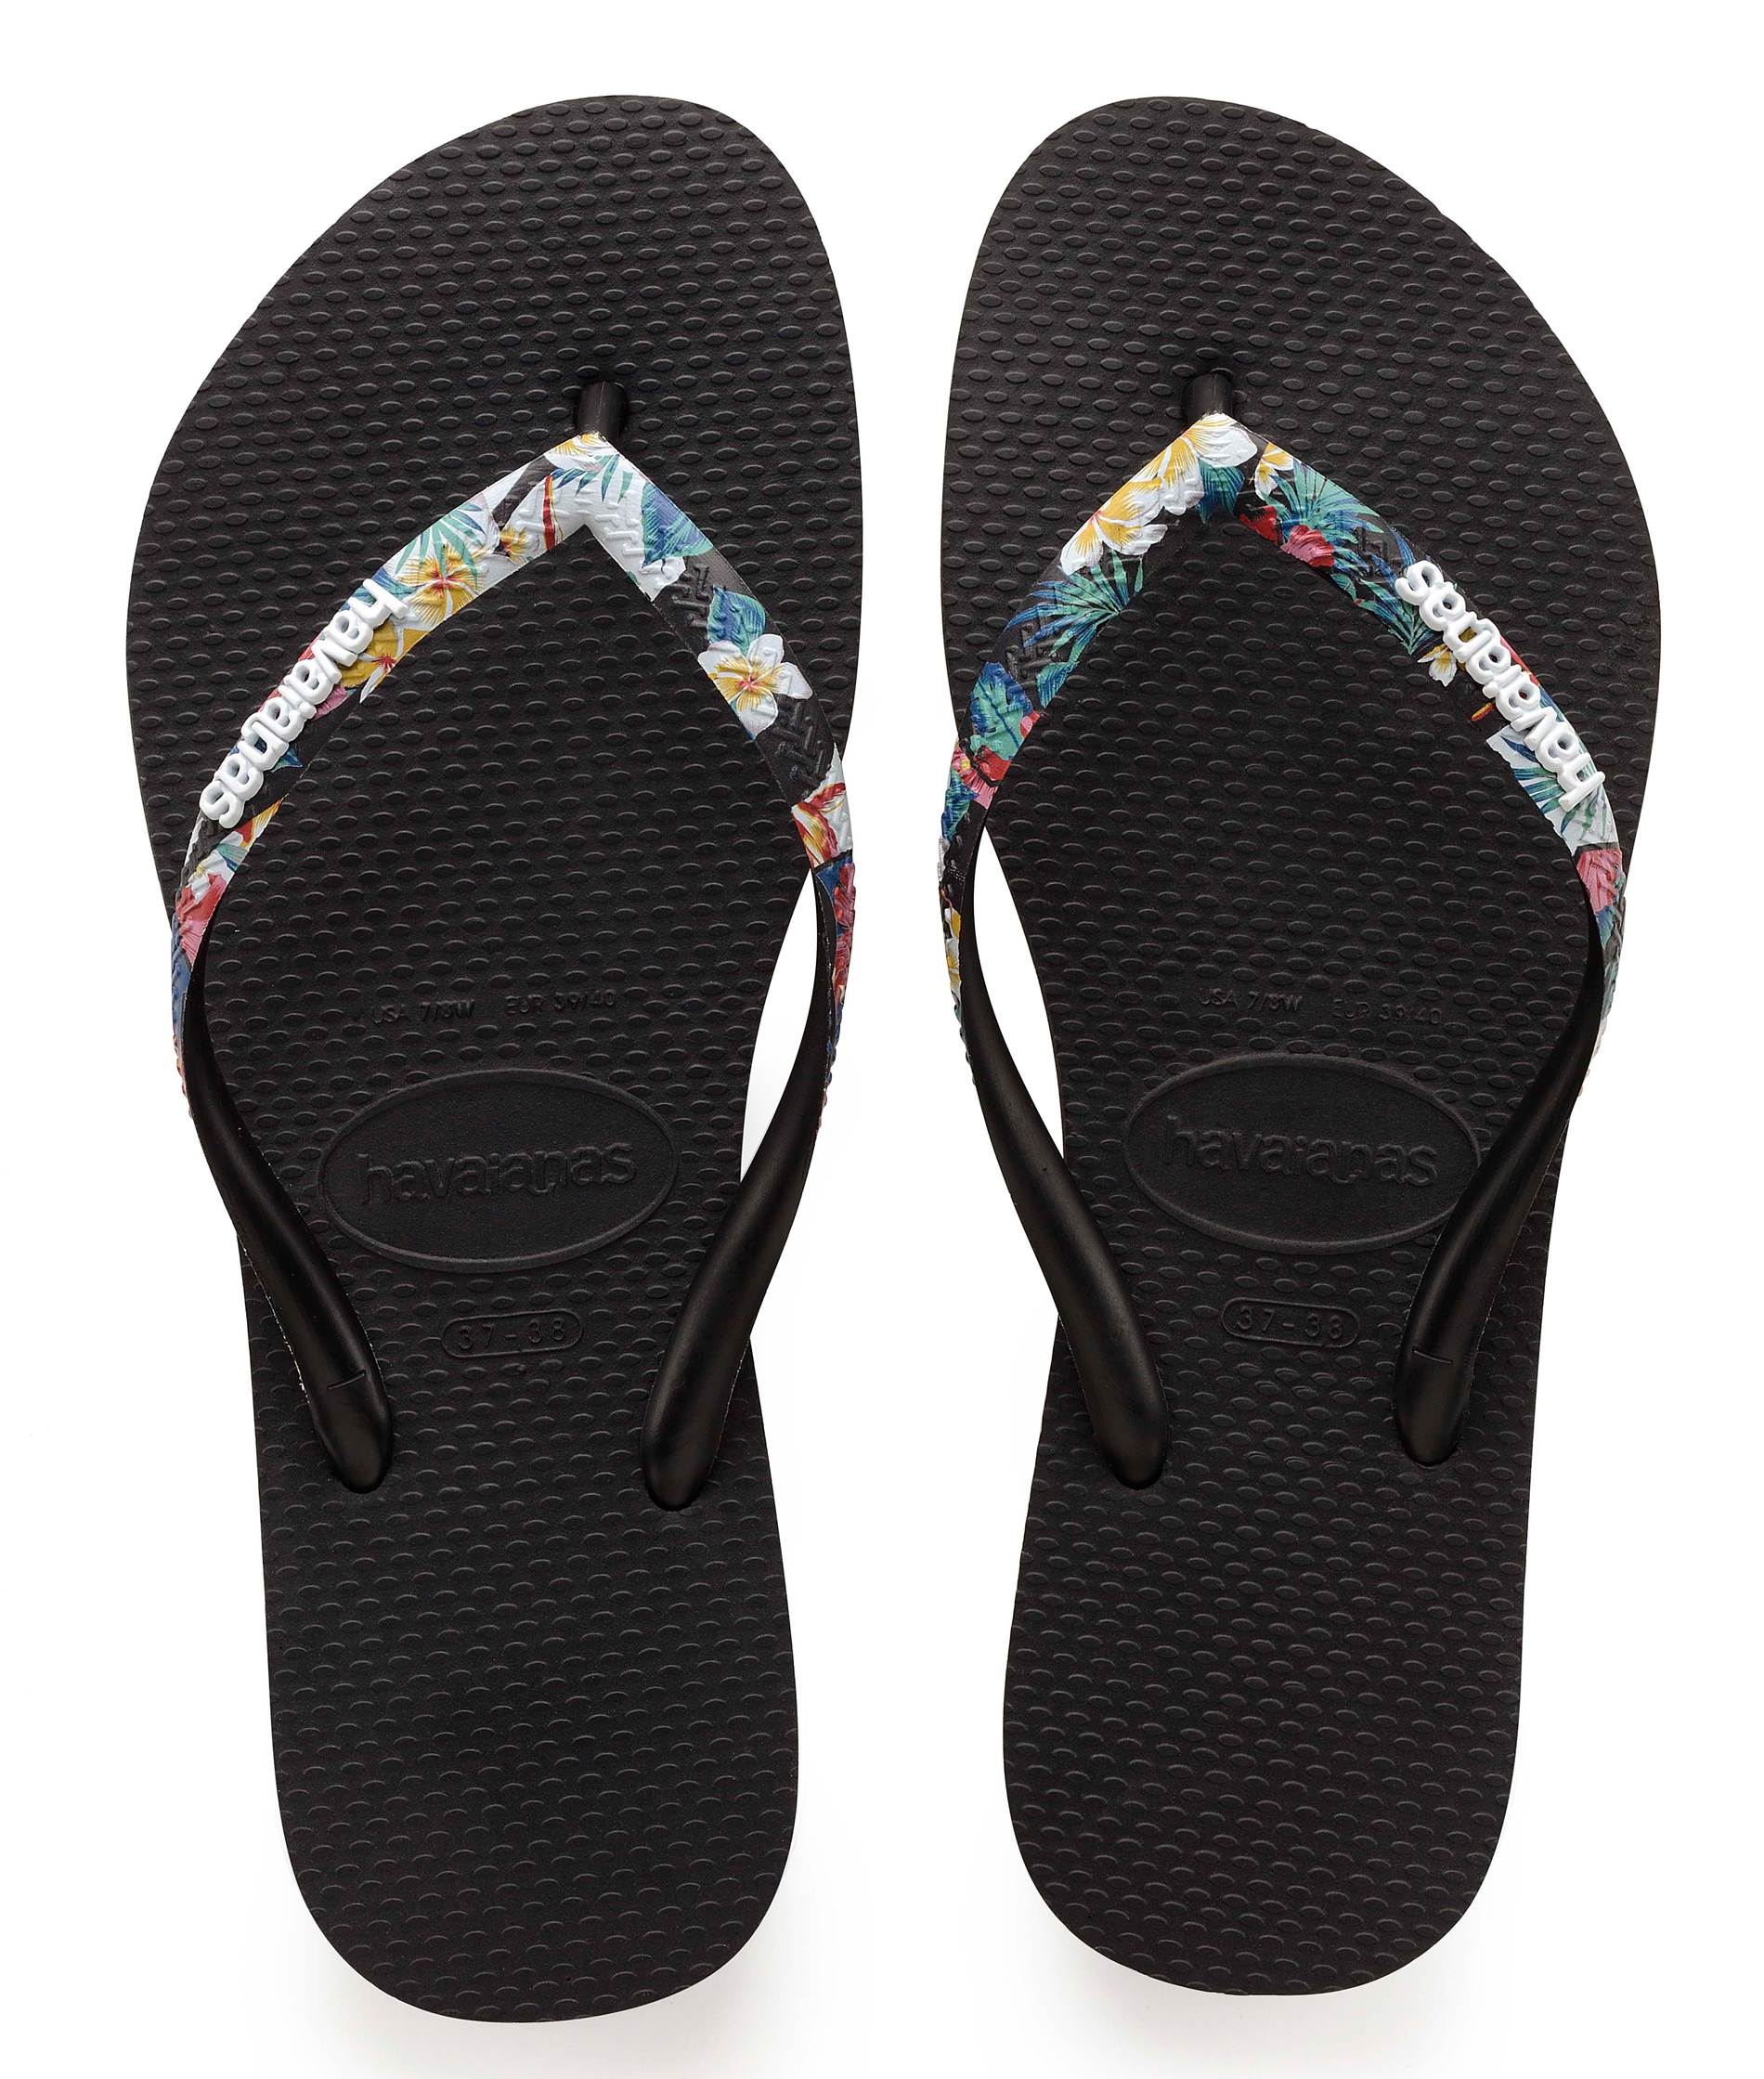 Havaianas Slim Strapped - Black/Multi